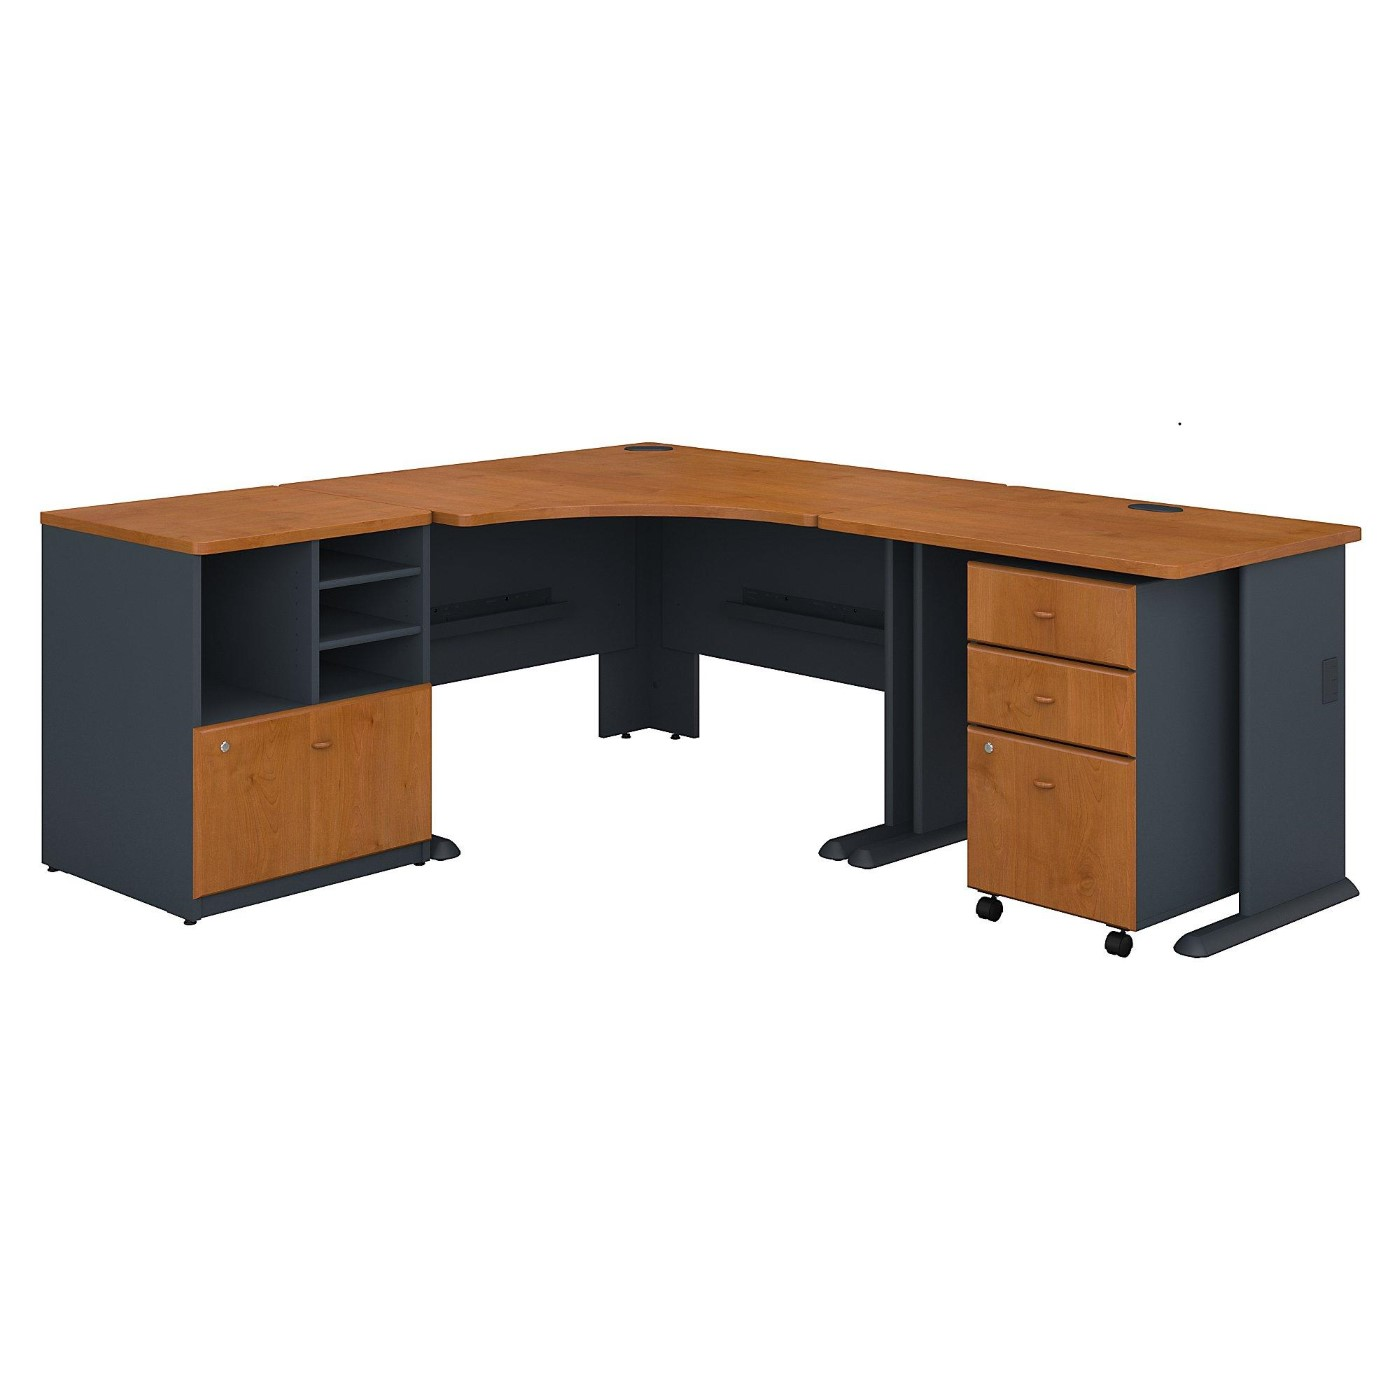 <font color=#c60><b>BUSH BUSINESS FURNITURE SERIES A 48W CORNER DESK WITH 36W RETURN AND STORAGE. FREE SHIPPING</font></b></font>